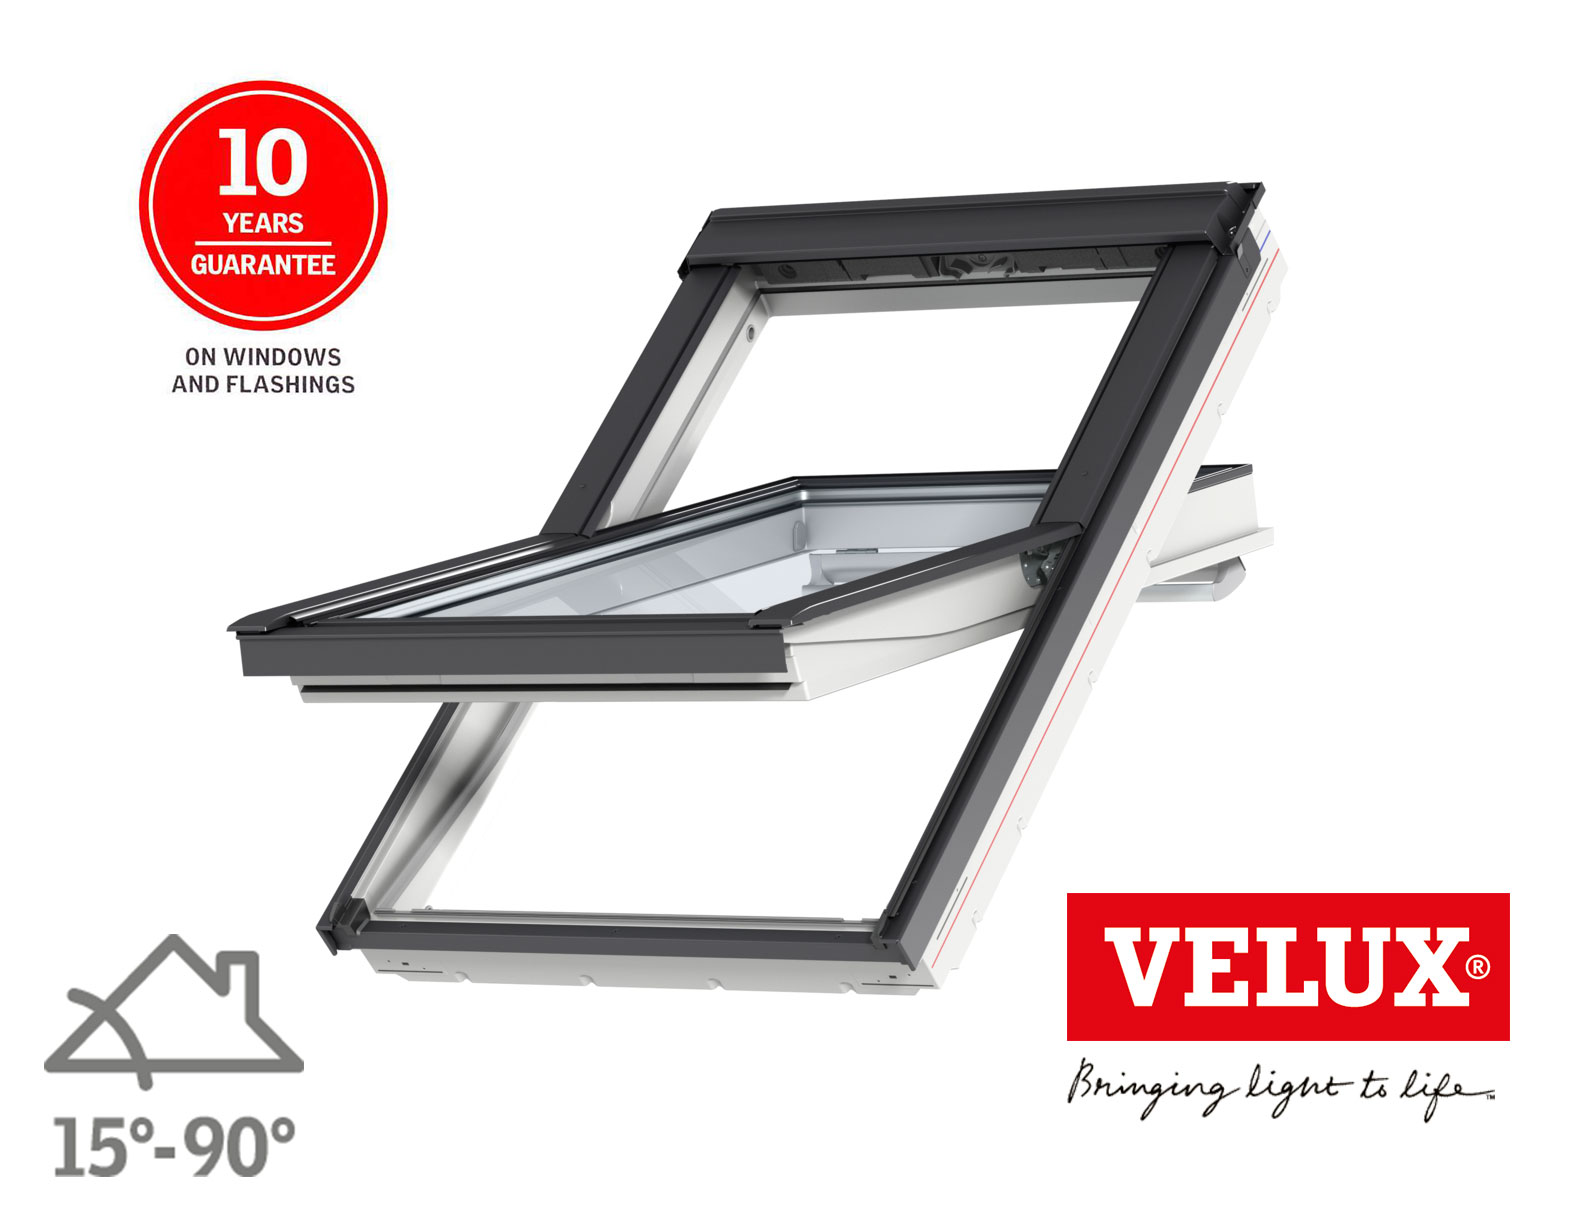 dimension vitrage velux ggl 1 awesome elegant velux ggu mk white centre pivot window obscure cm. Black Bedroom Furniture Sets. Home Design Ideas